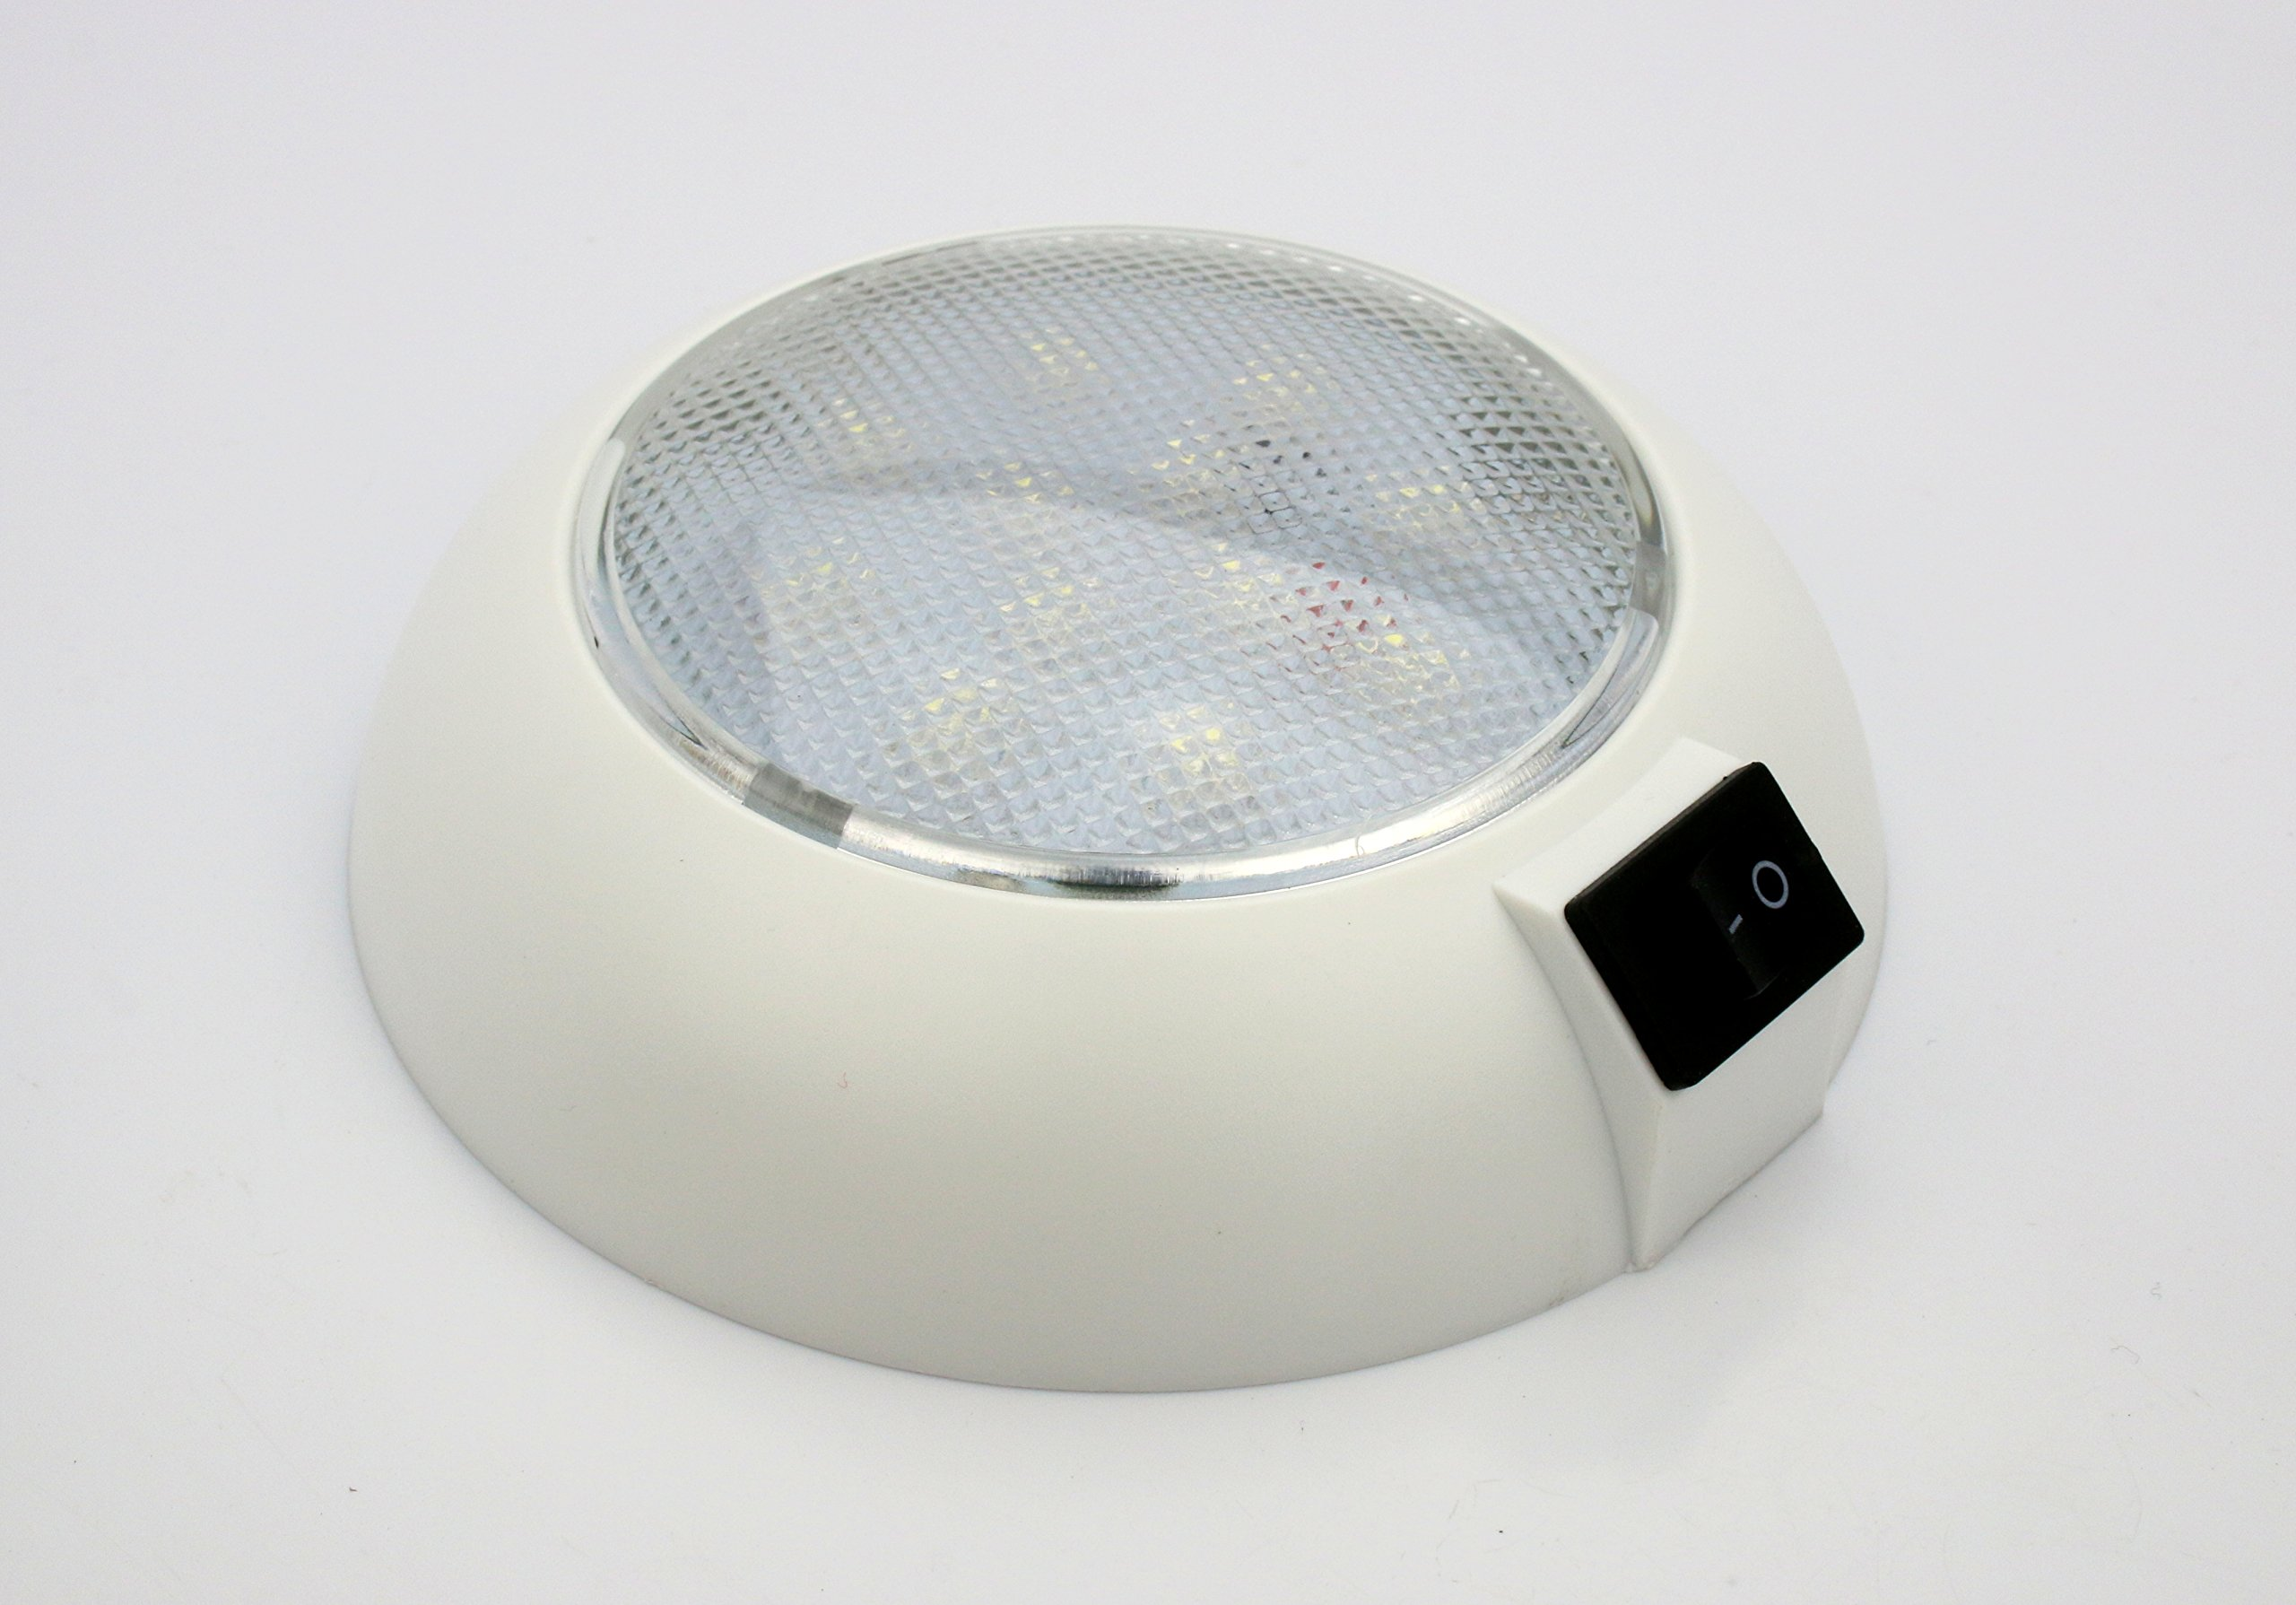 Pilotlights.net DL45BAT-WHT-CW Dome Light, White